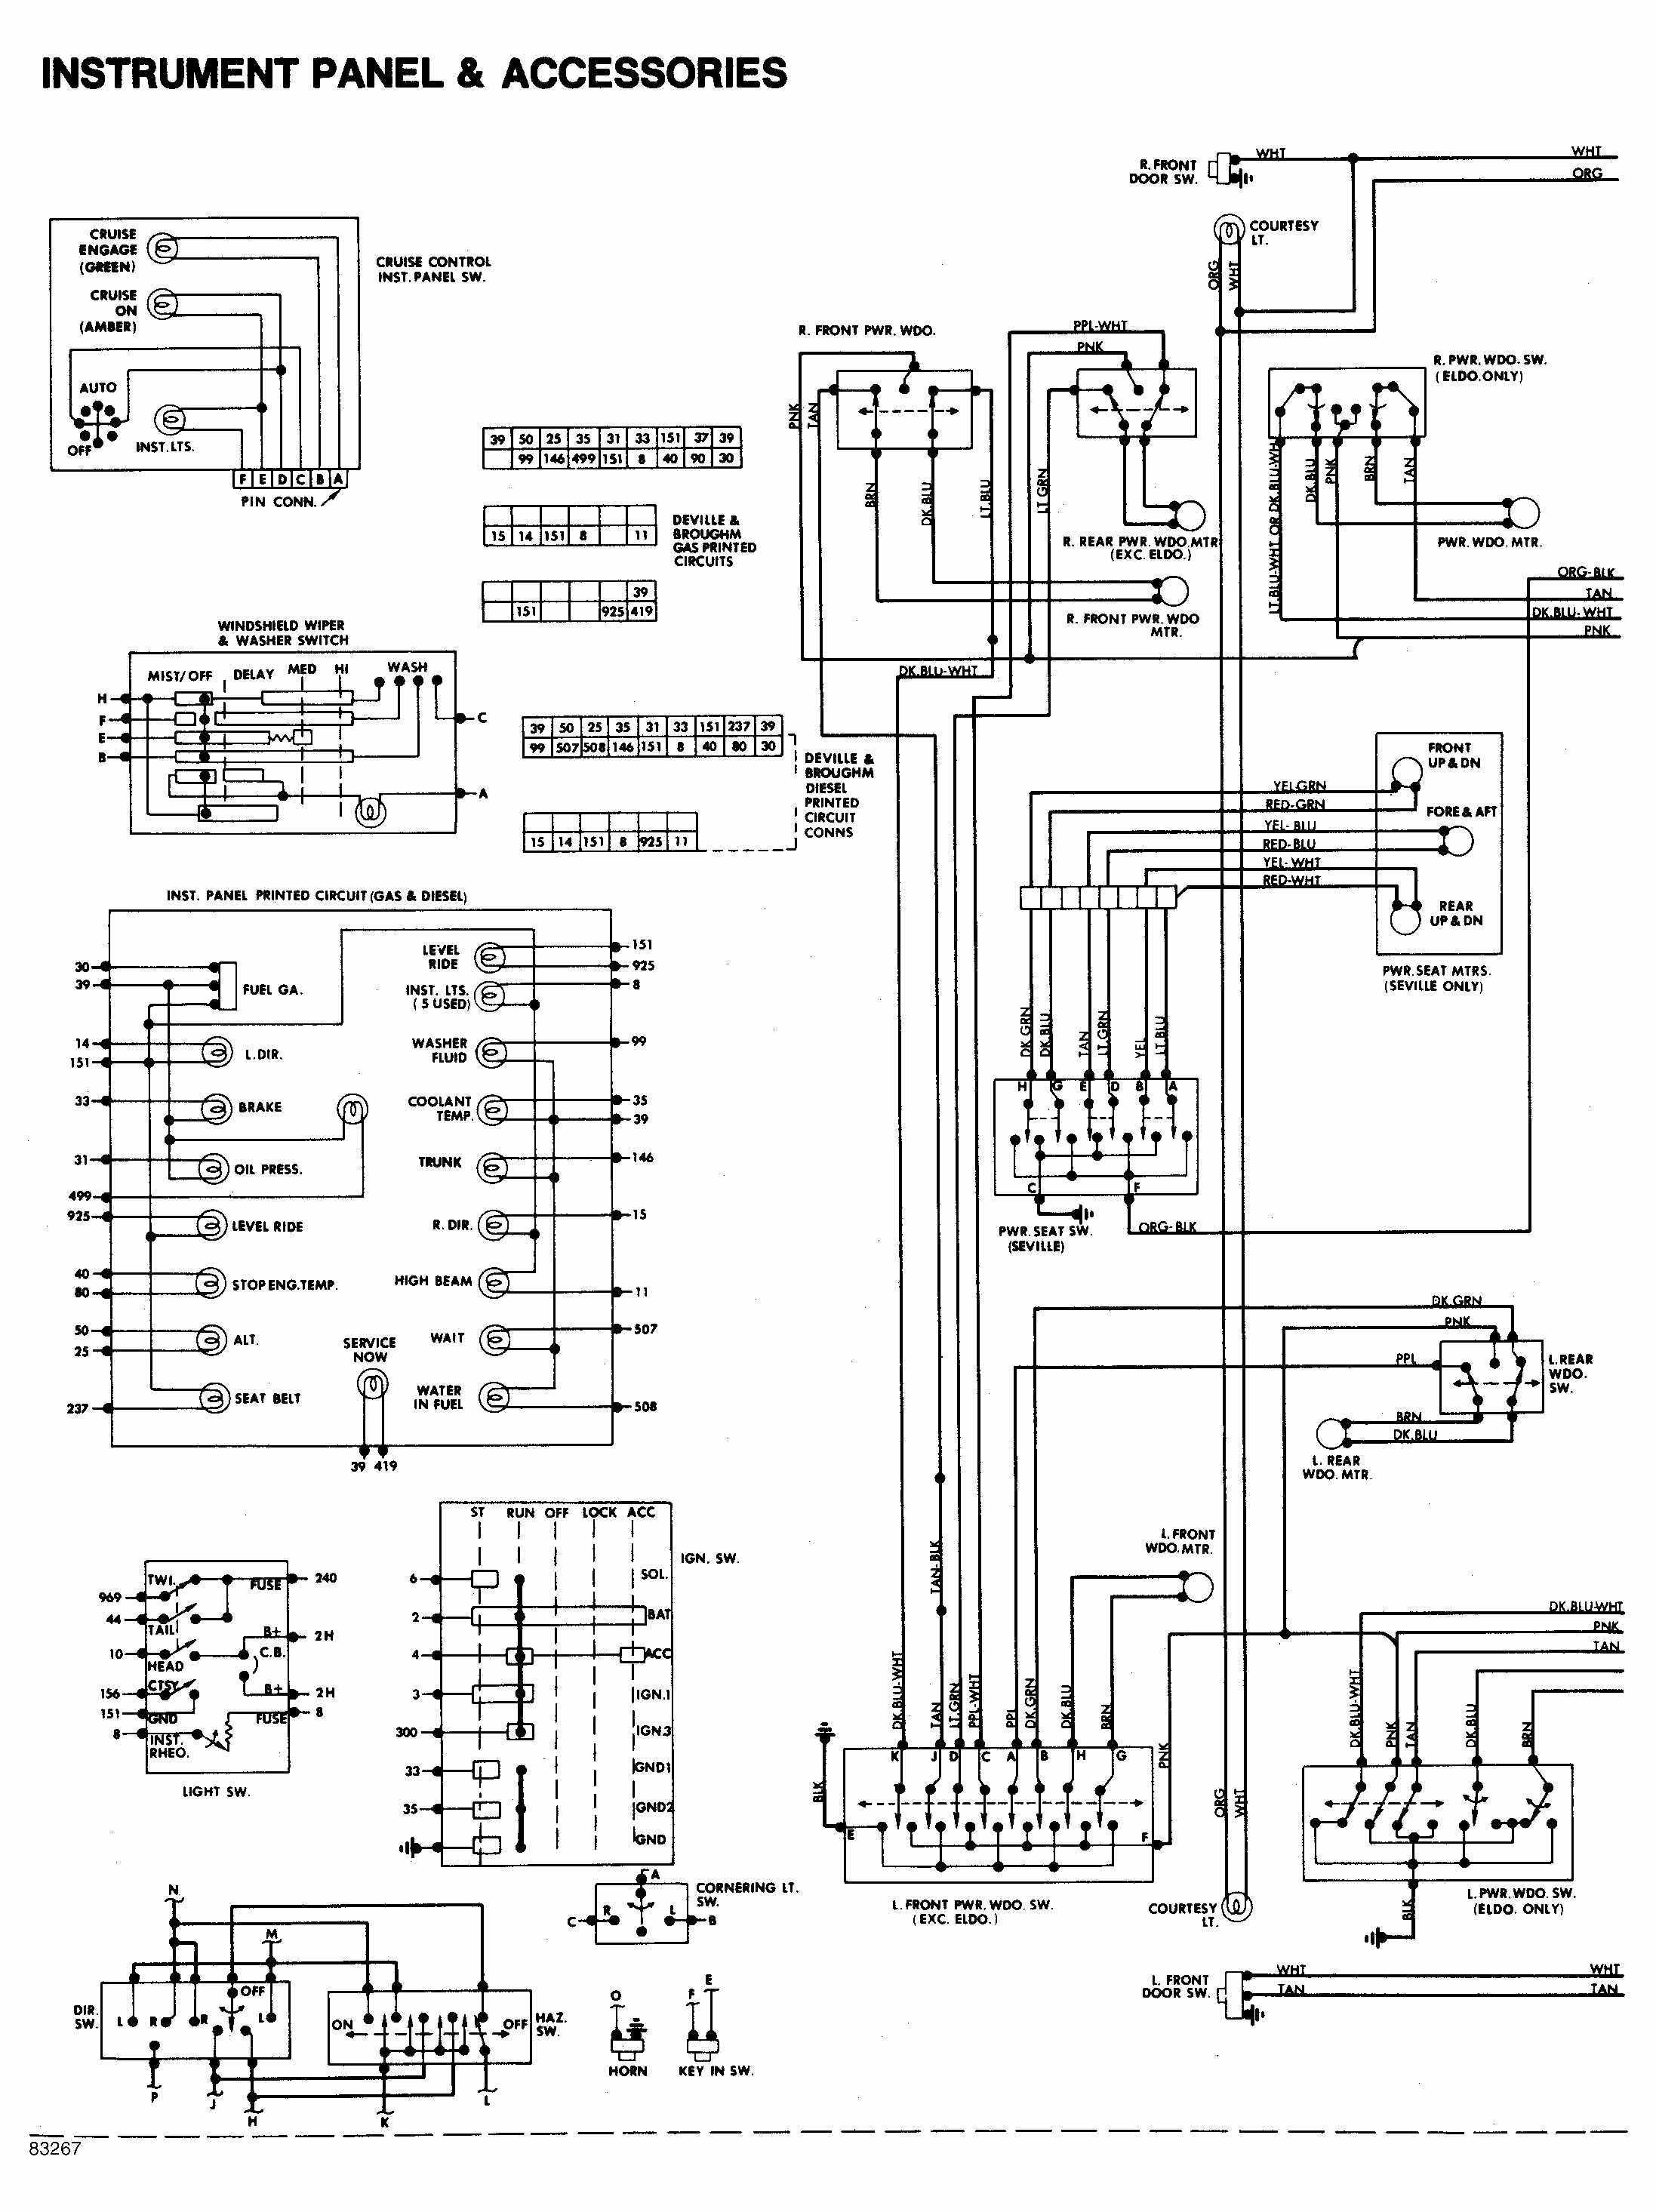 DIAGRAM] 1979 Cadillac Deville Radio Wiring Diagram FULL Version HD Quality Wiring  Diagram - WIRINGMANUALPDF.JAURES-LESPECTACLE.FRwiring diagram